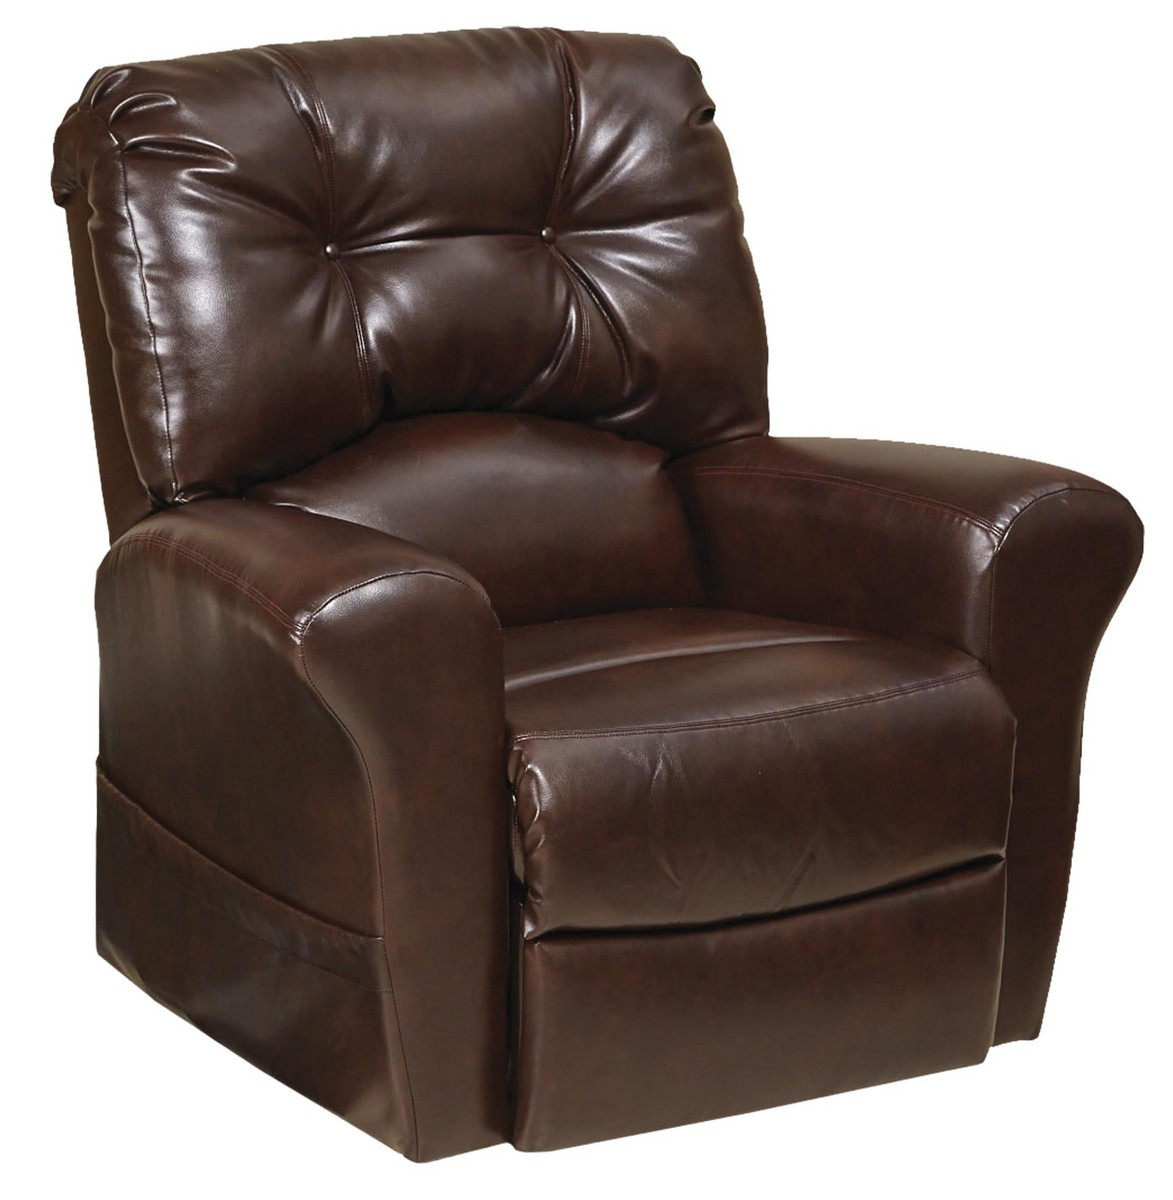 Catnapper Chair Catnapper Landon Power Lift Lay Flat Recliner Java Cn